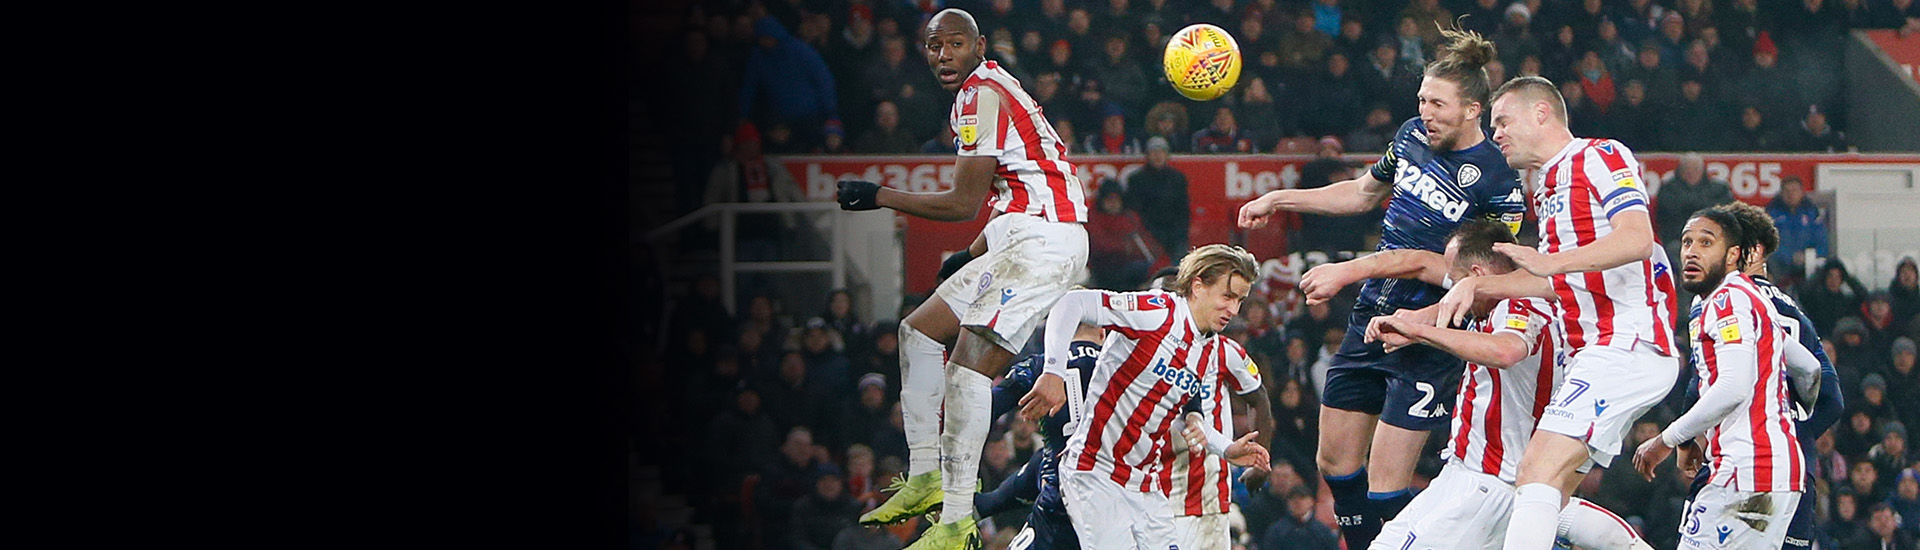 REPORT: STOKE CITY 2-1 LEEDS UNITED